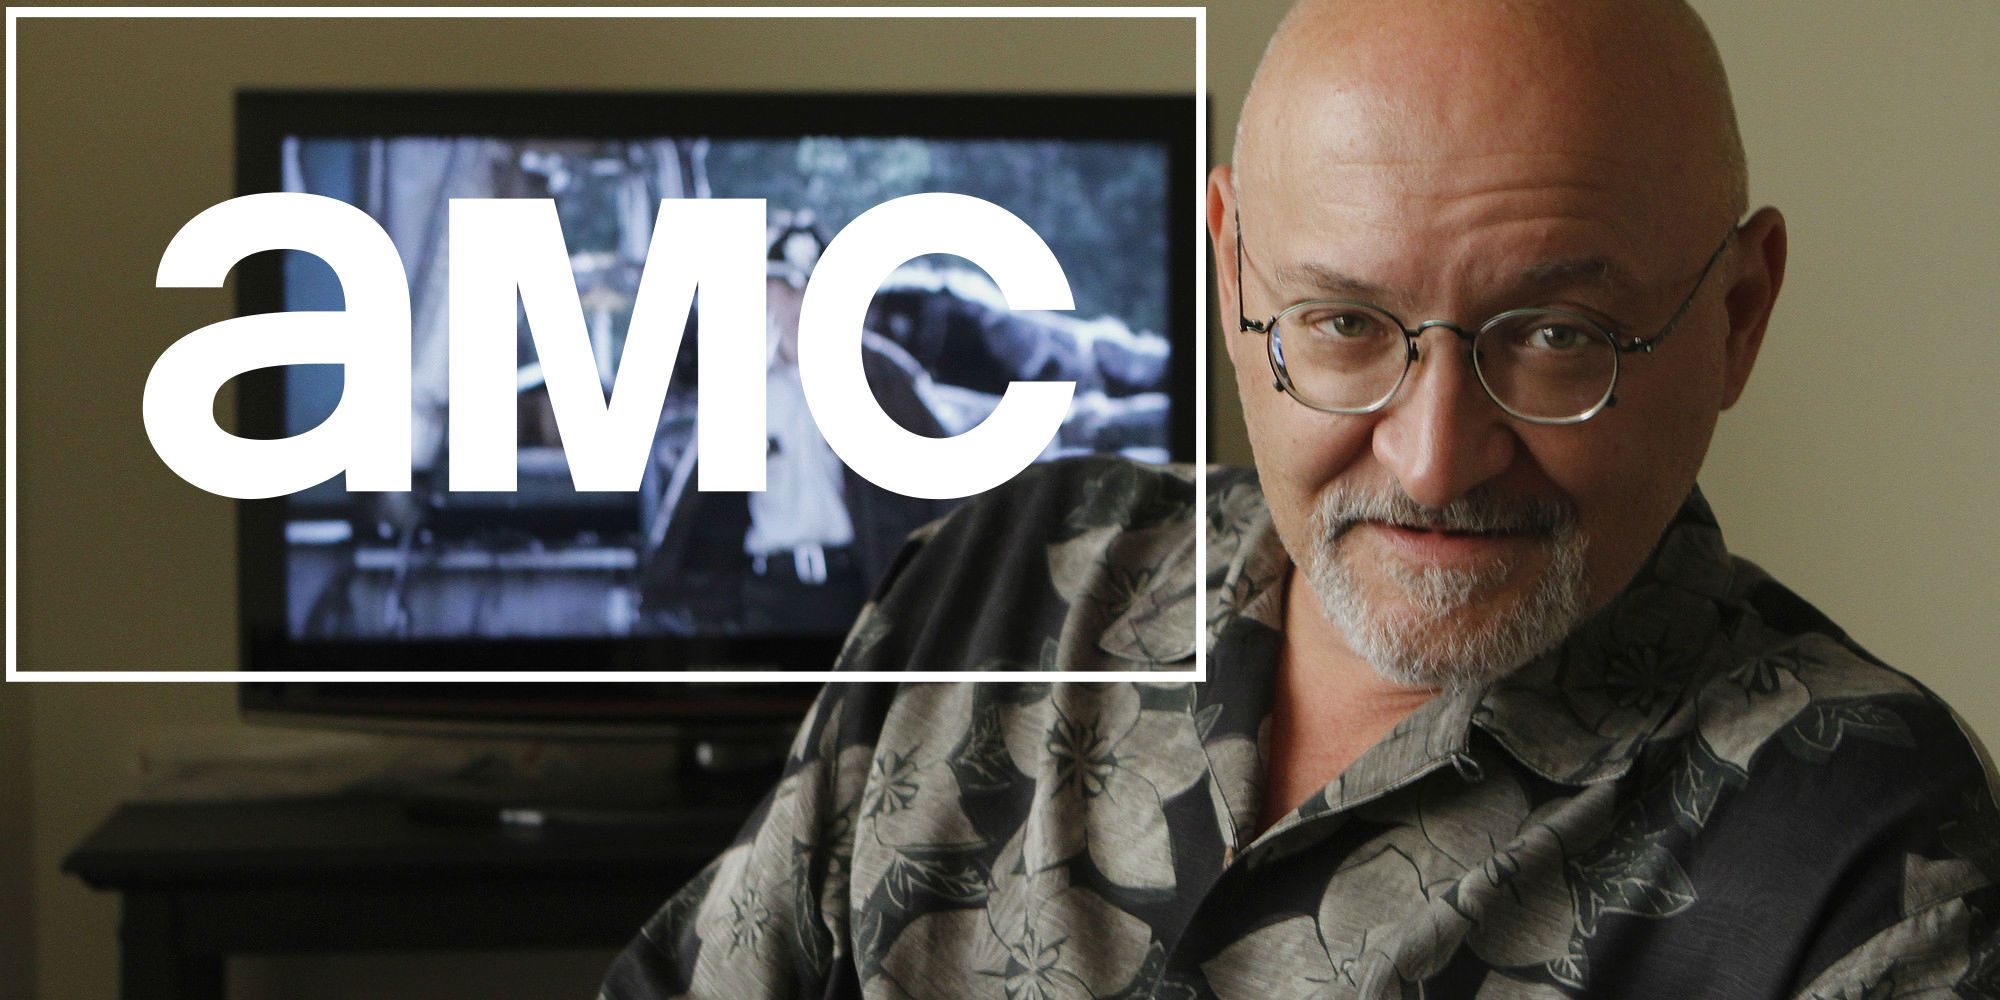 The Walking Dead: Why Frank Darabont Left & Legal Issues